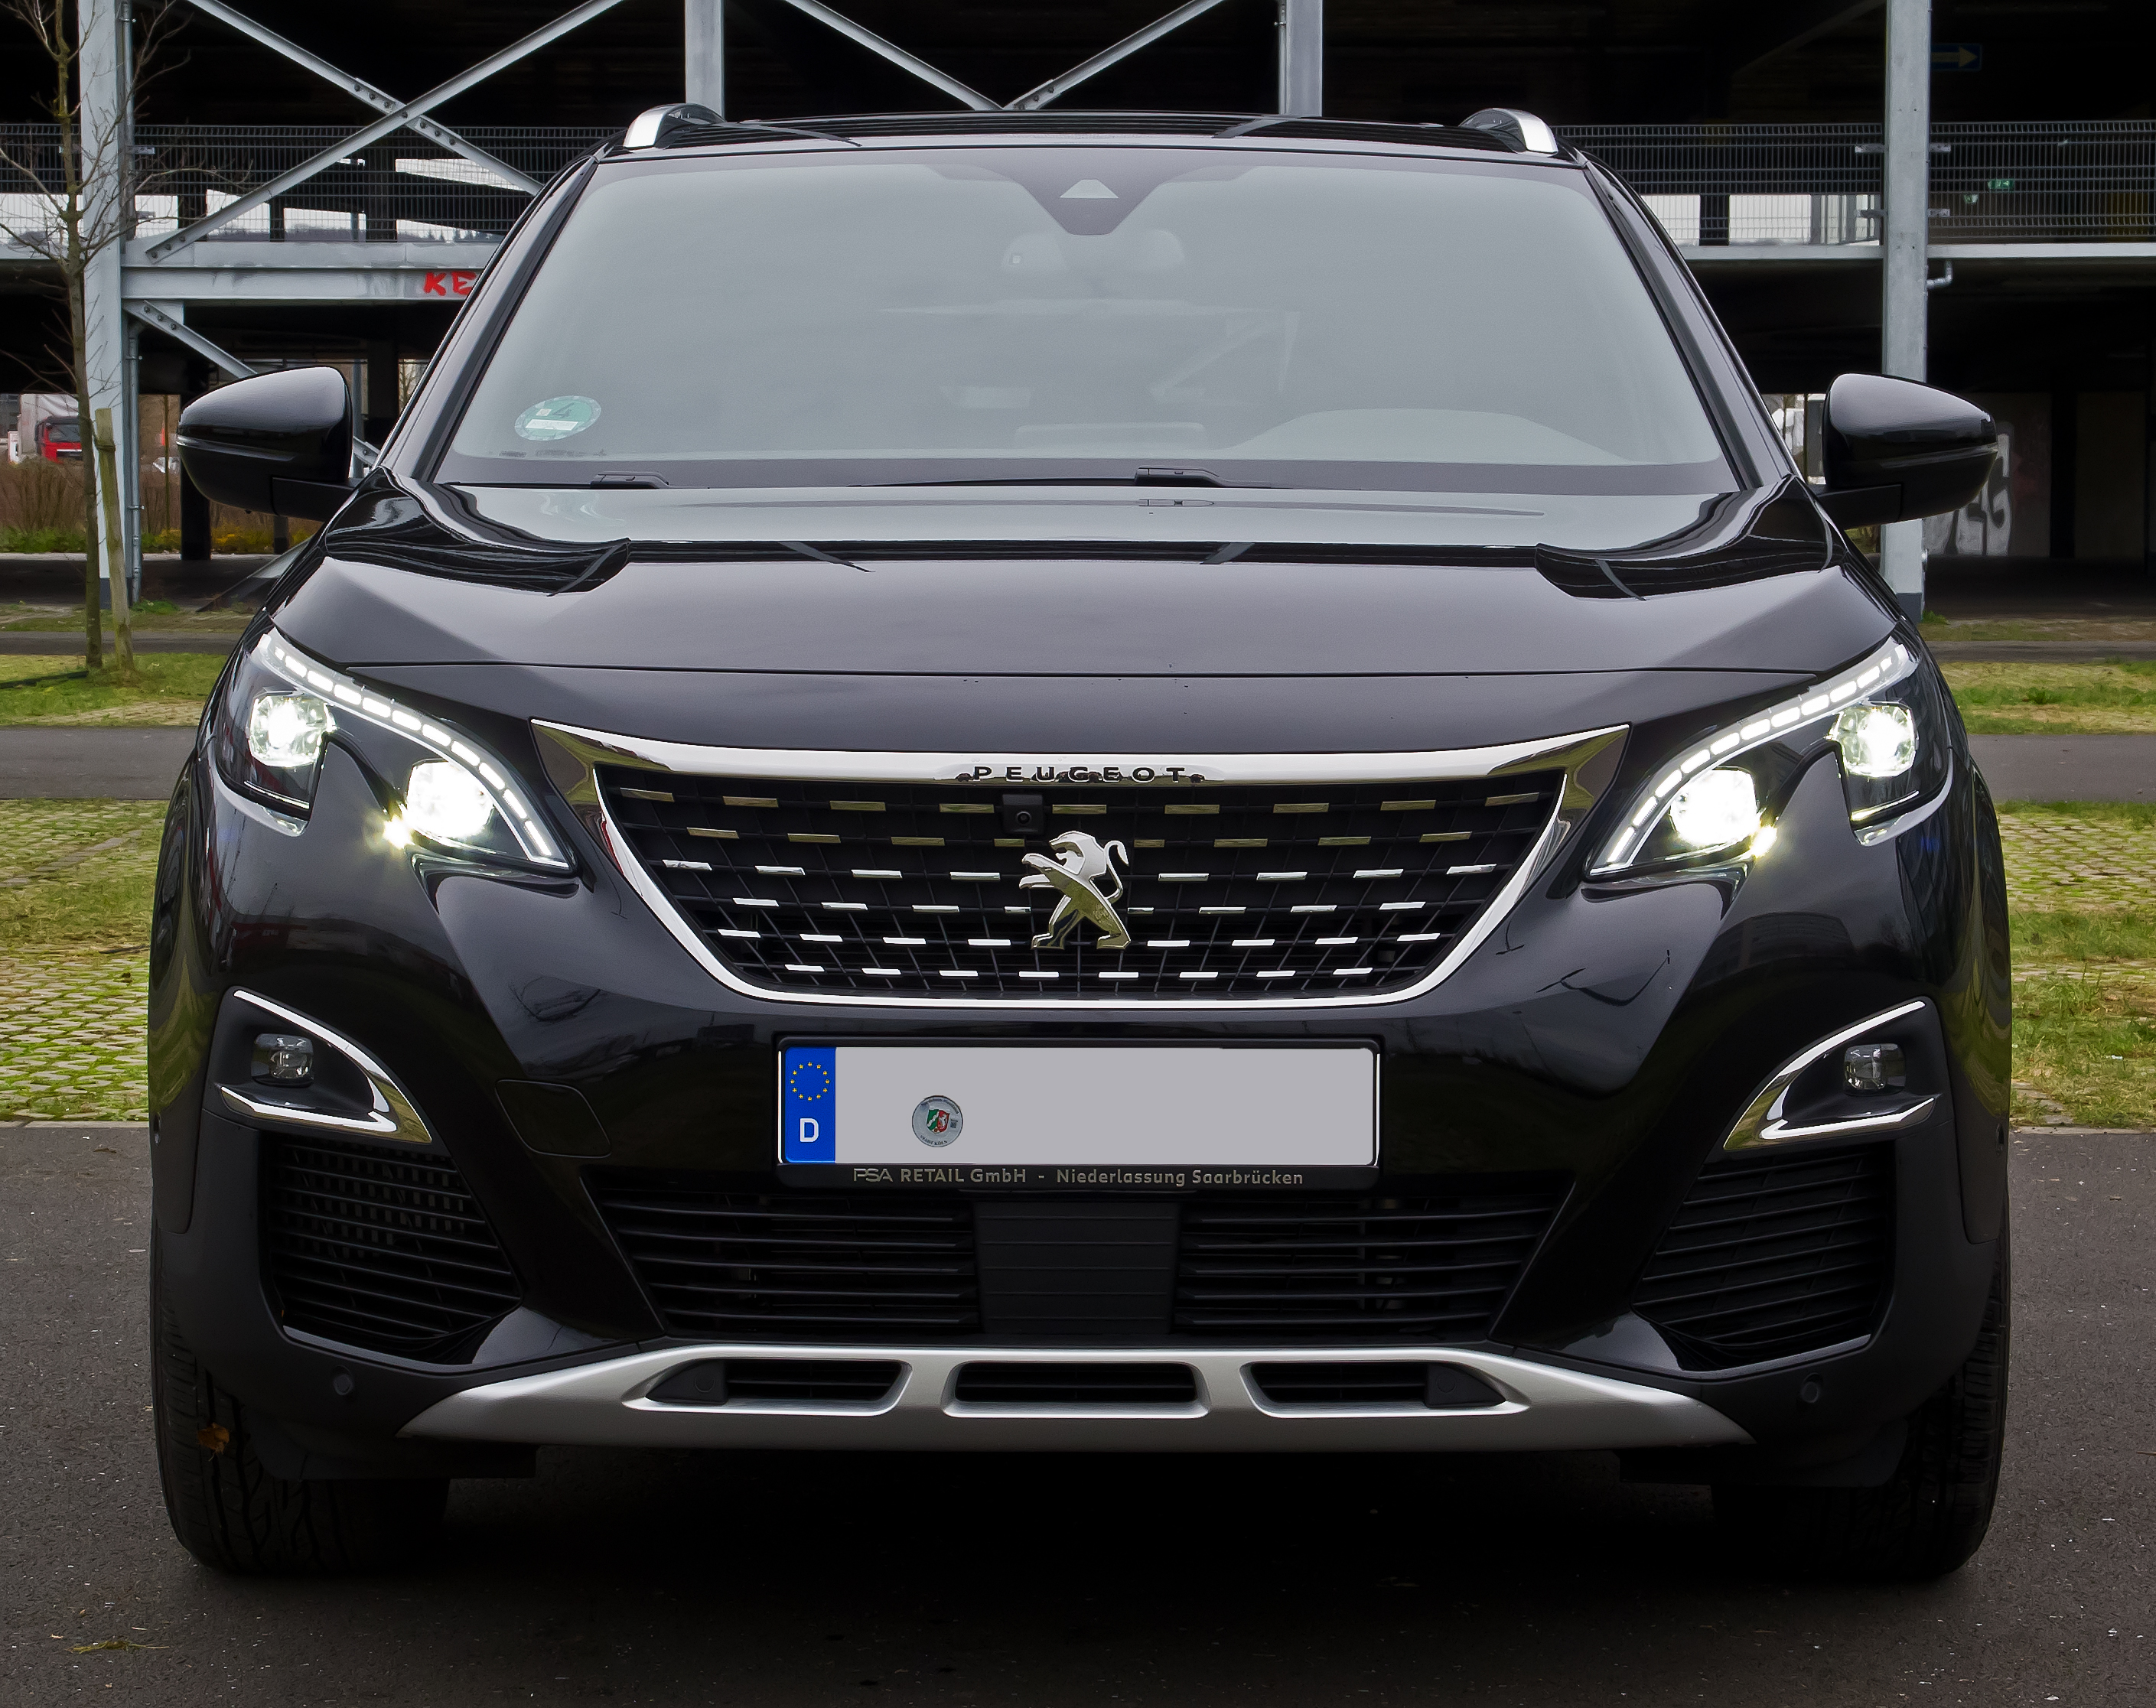 file:peugeot 3008 bluehdi 150 allure gt-line (ii) – frontansicht, 6